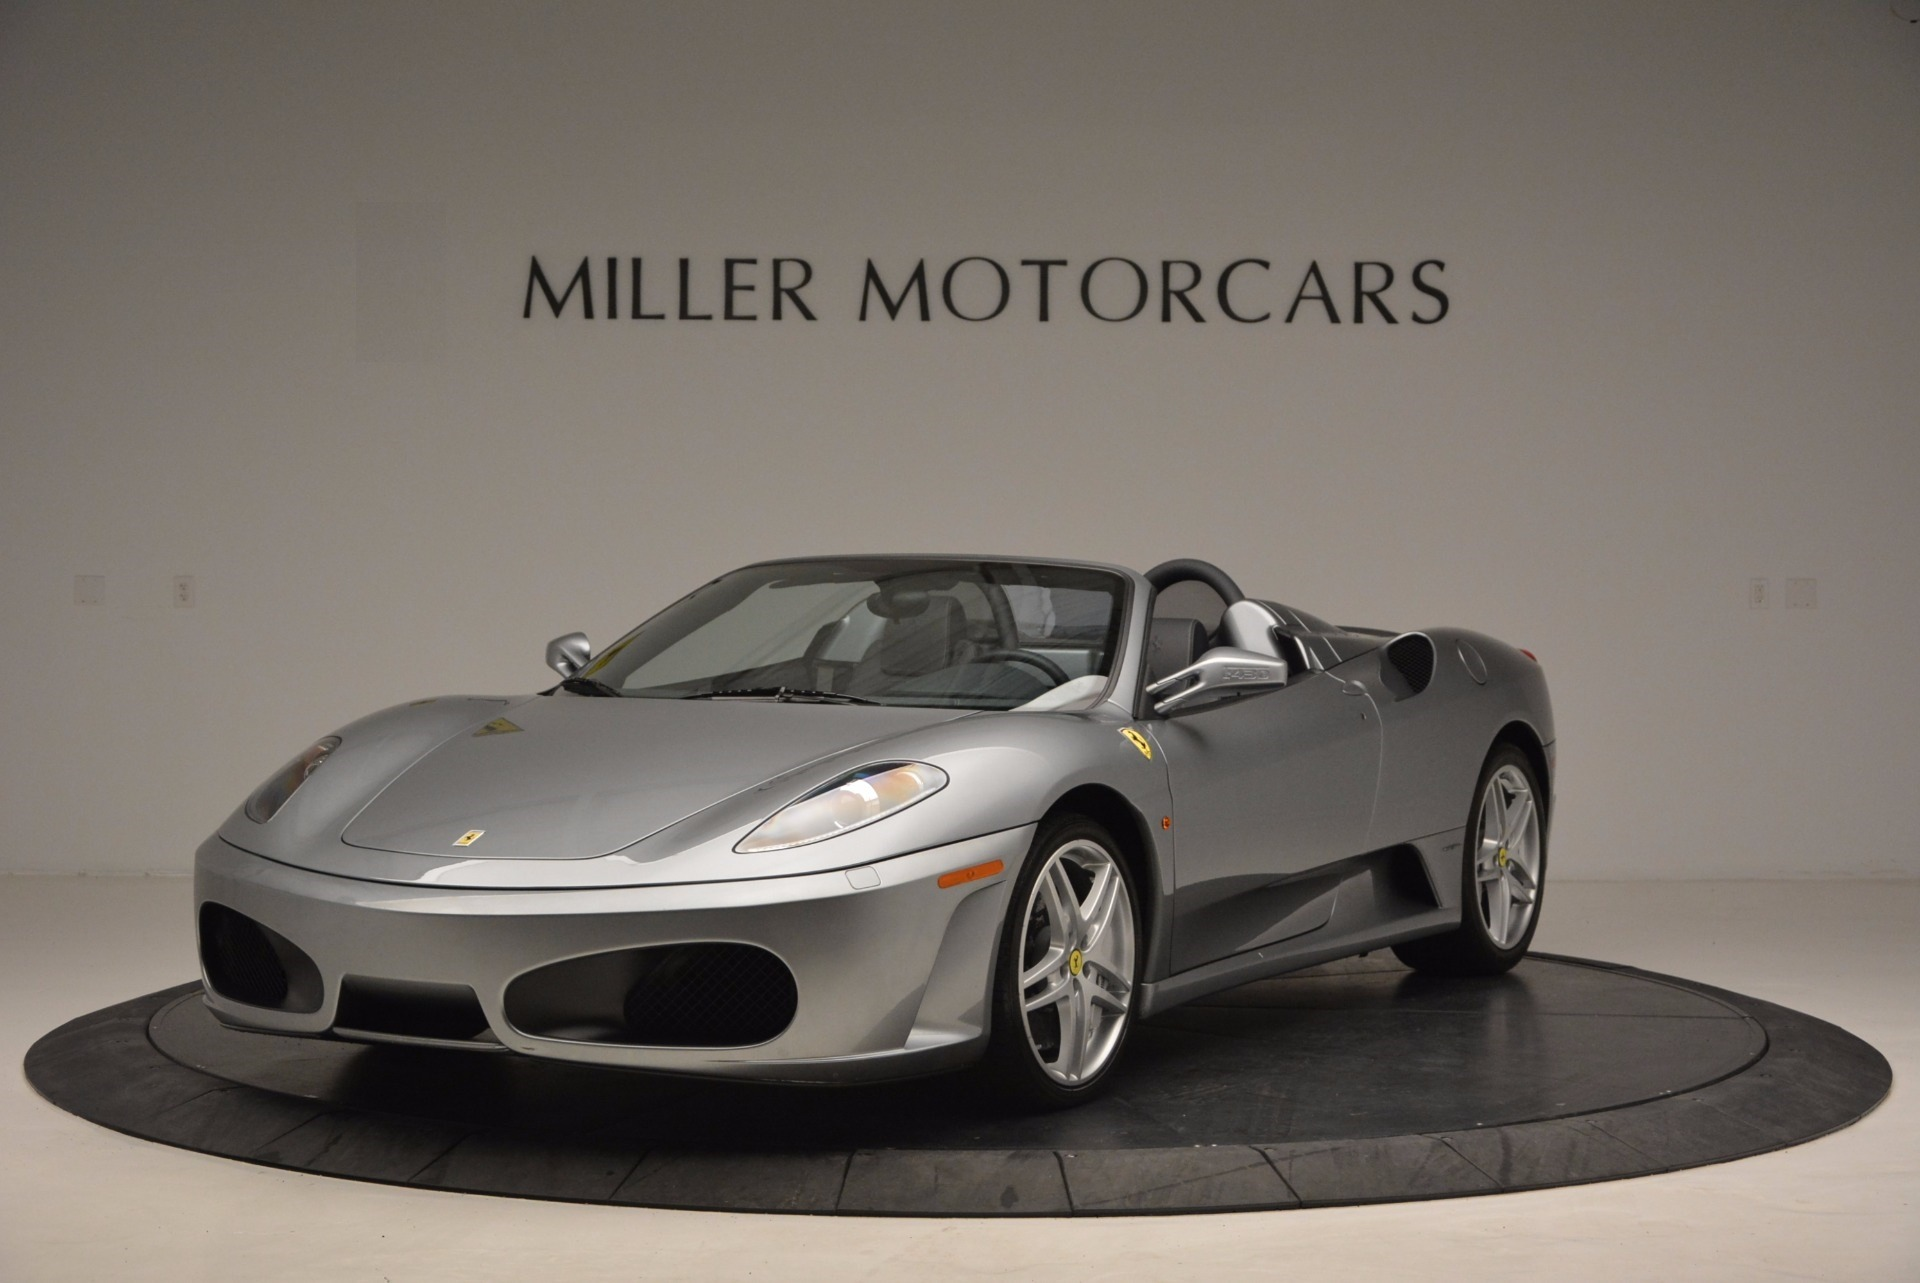 Used 2007 Ferrari F430 Spider for sale $121,900 at Pagani of Greenwich in Greenwich CT 06830 1